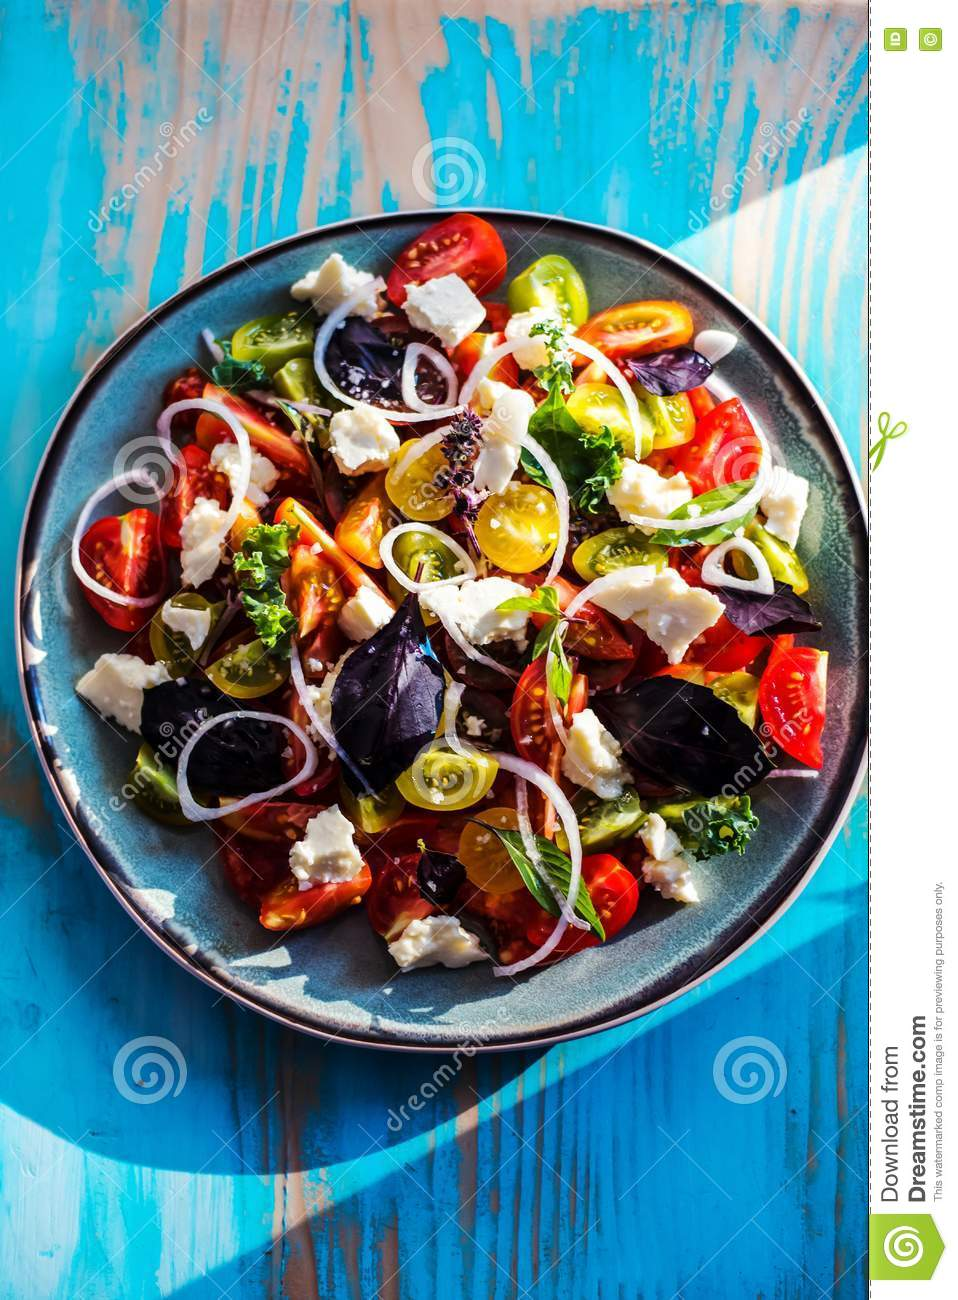 Heirloom tomatoes salad with cheese and basil